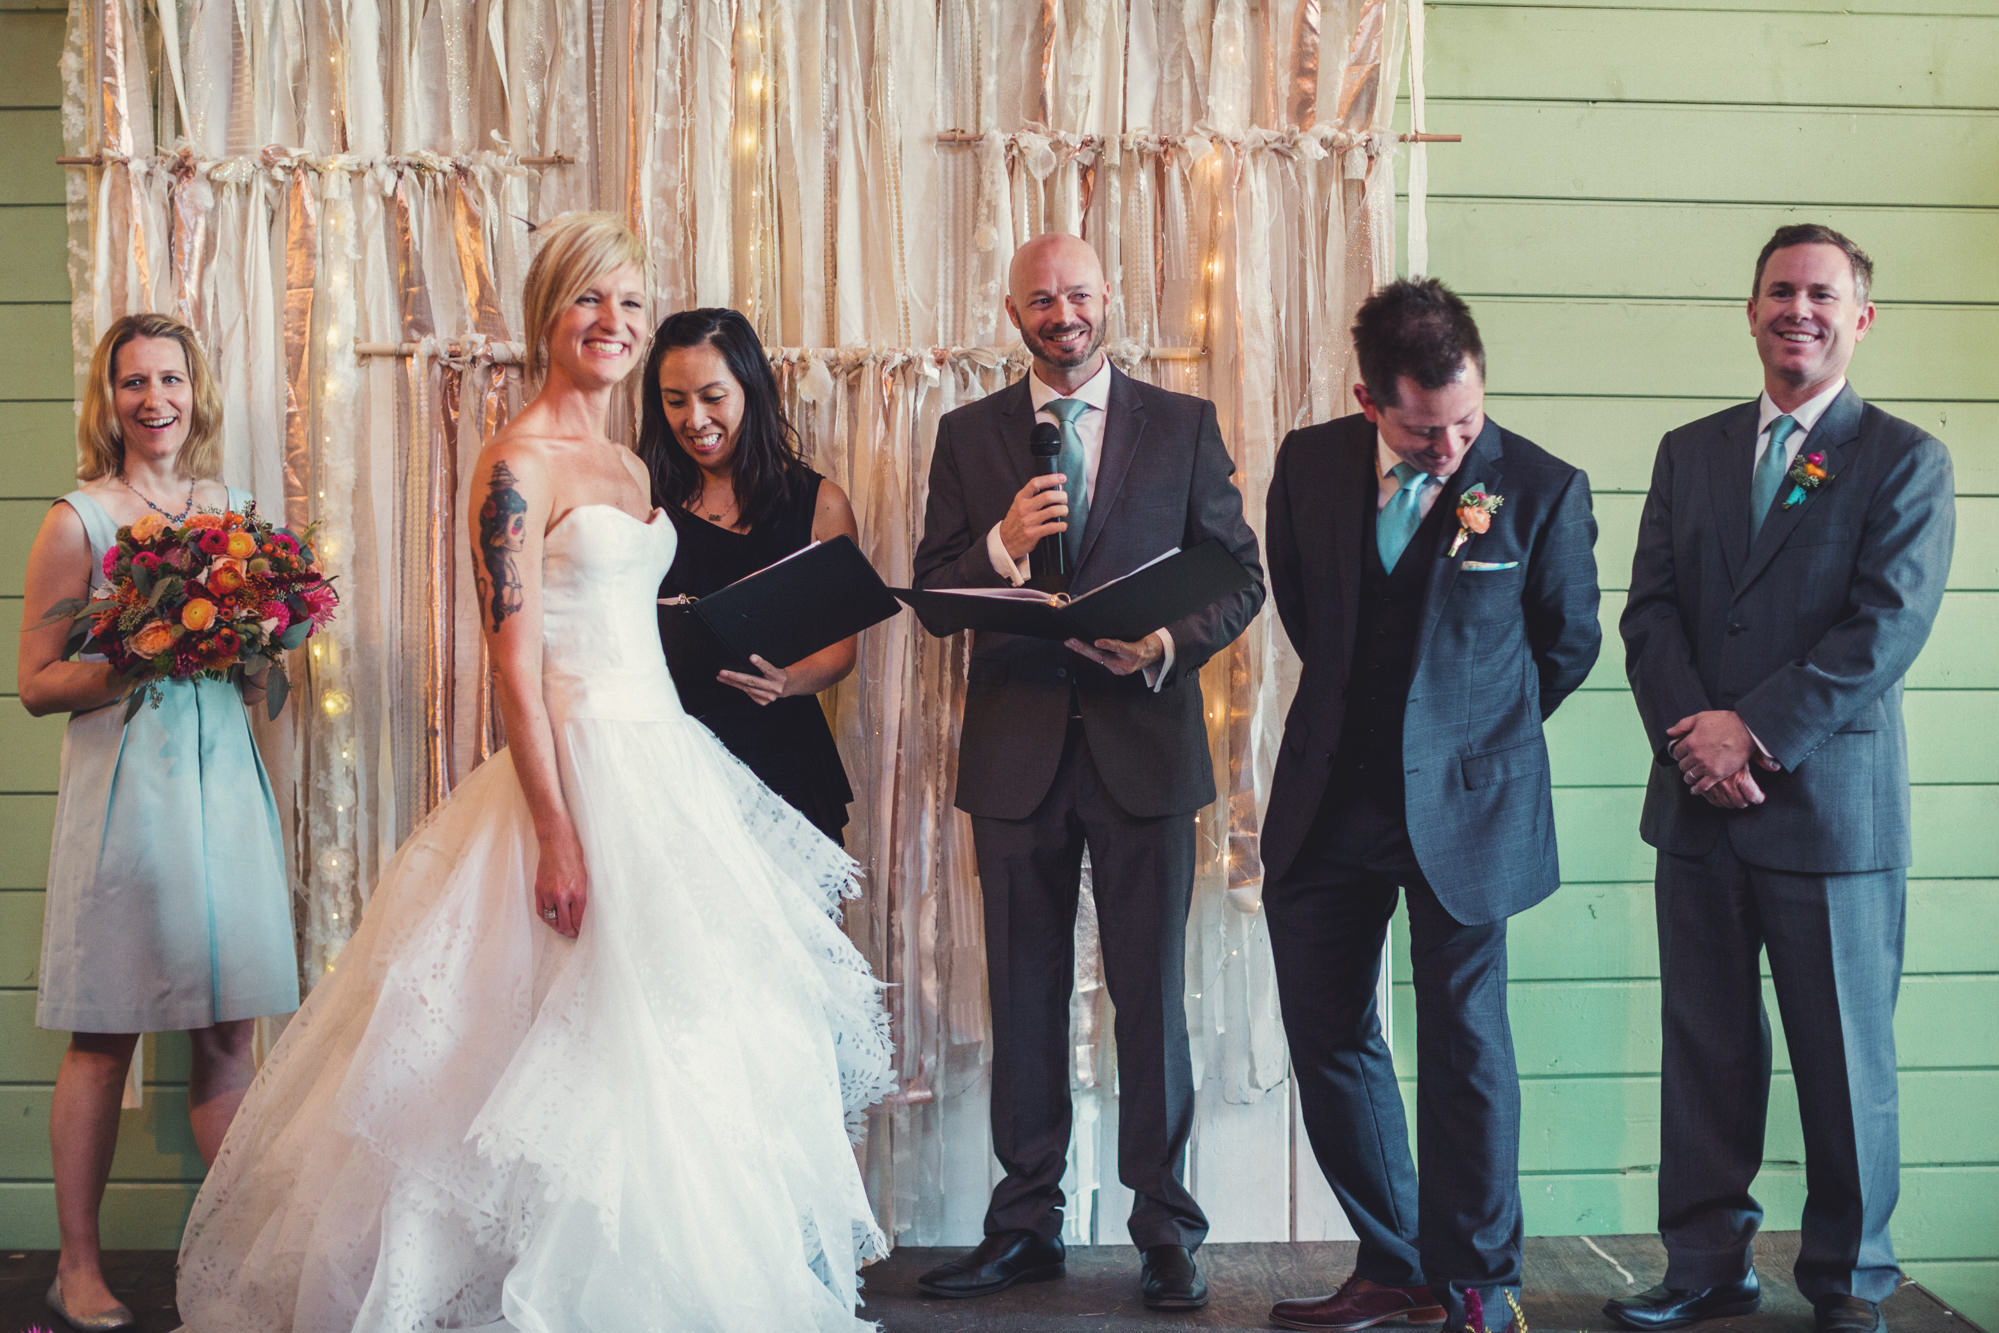 Toby's Feed Barn Wedding ©Anne-Claire Brun 78